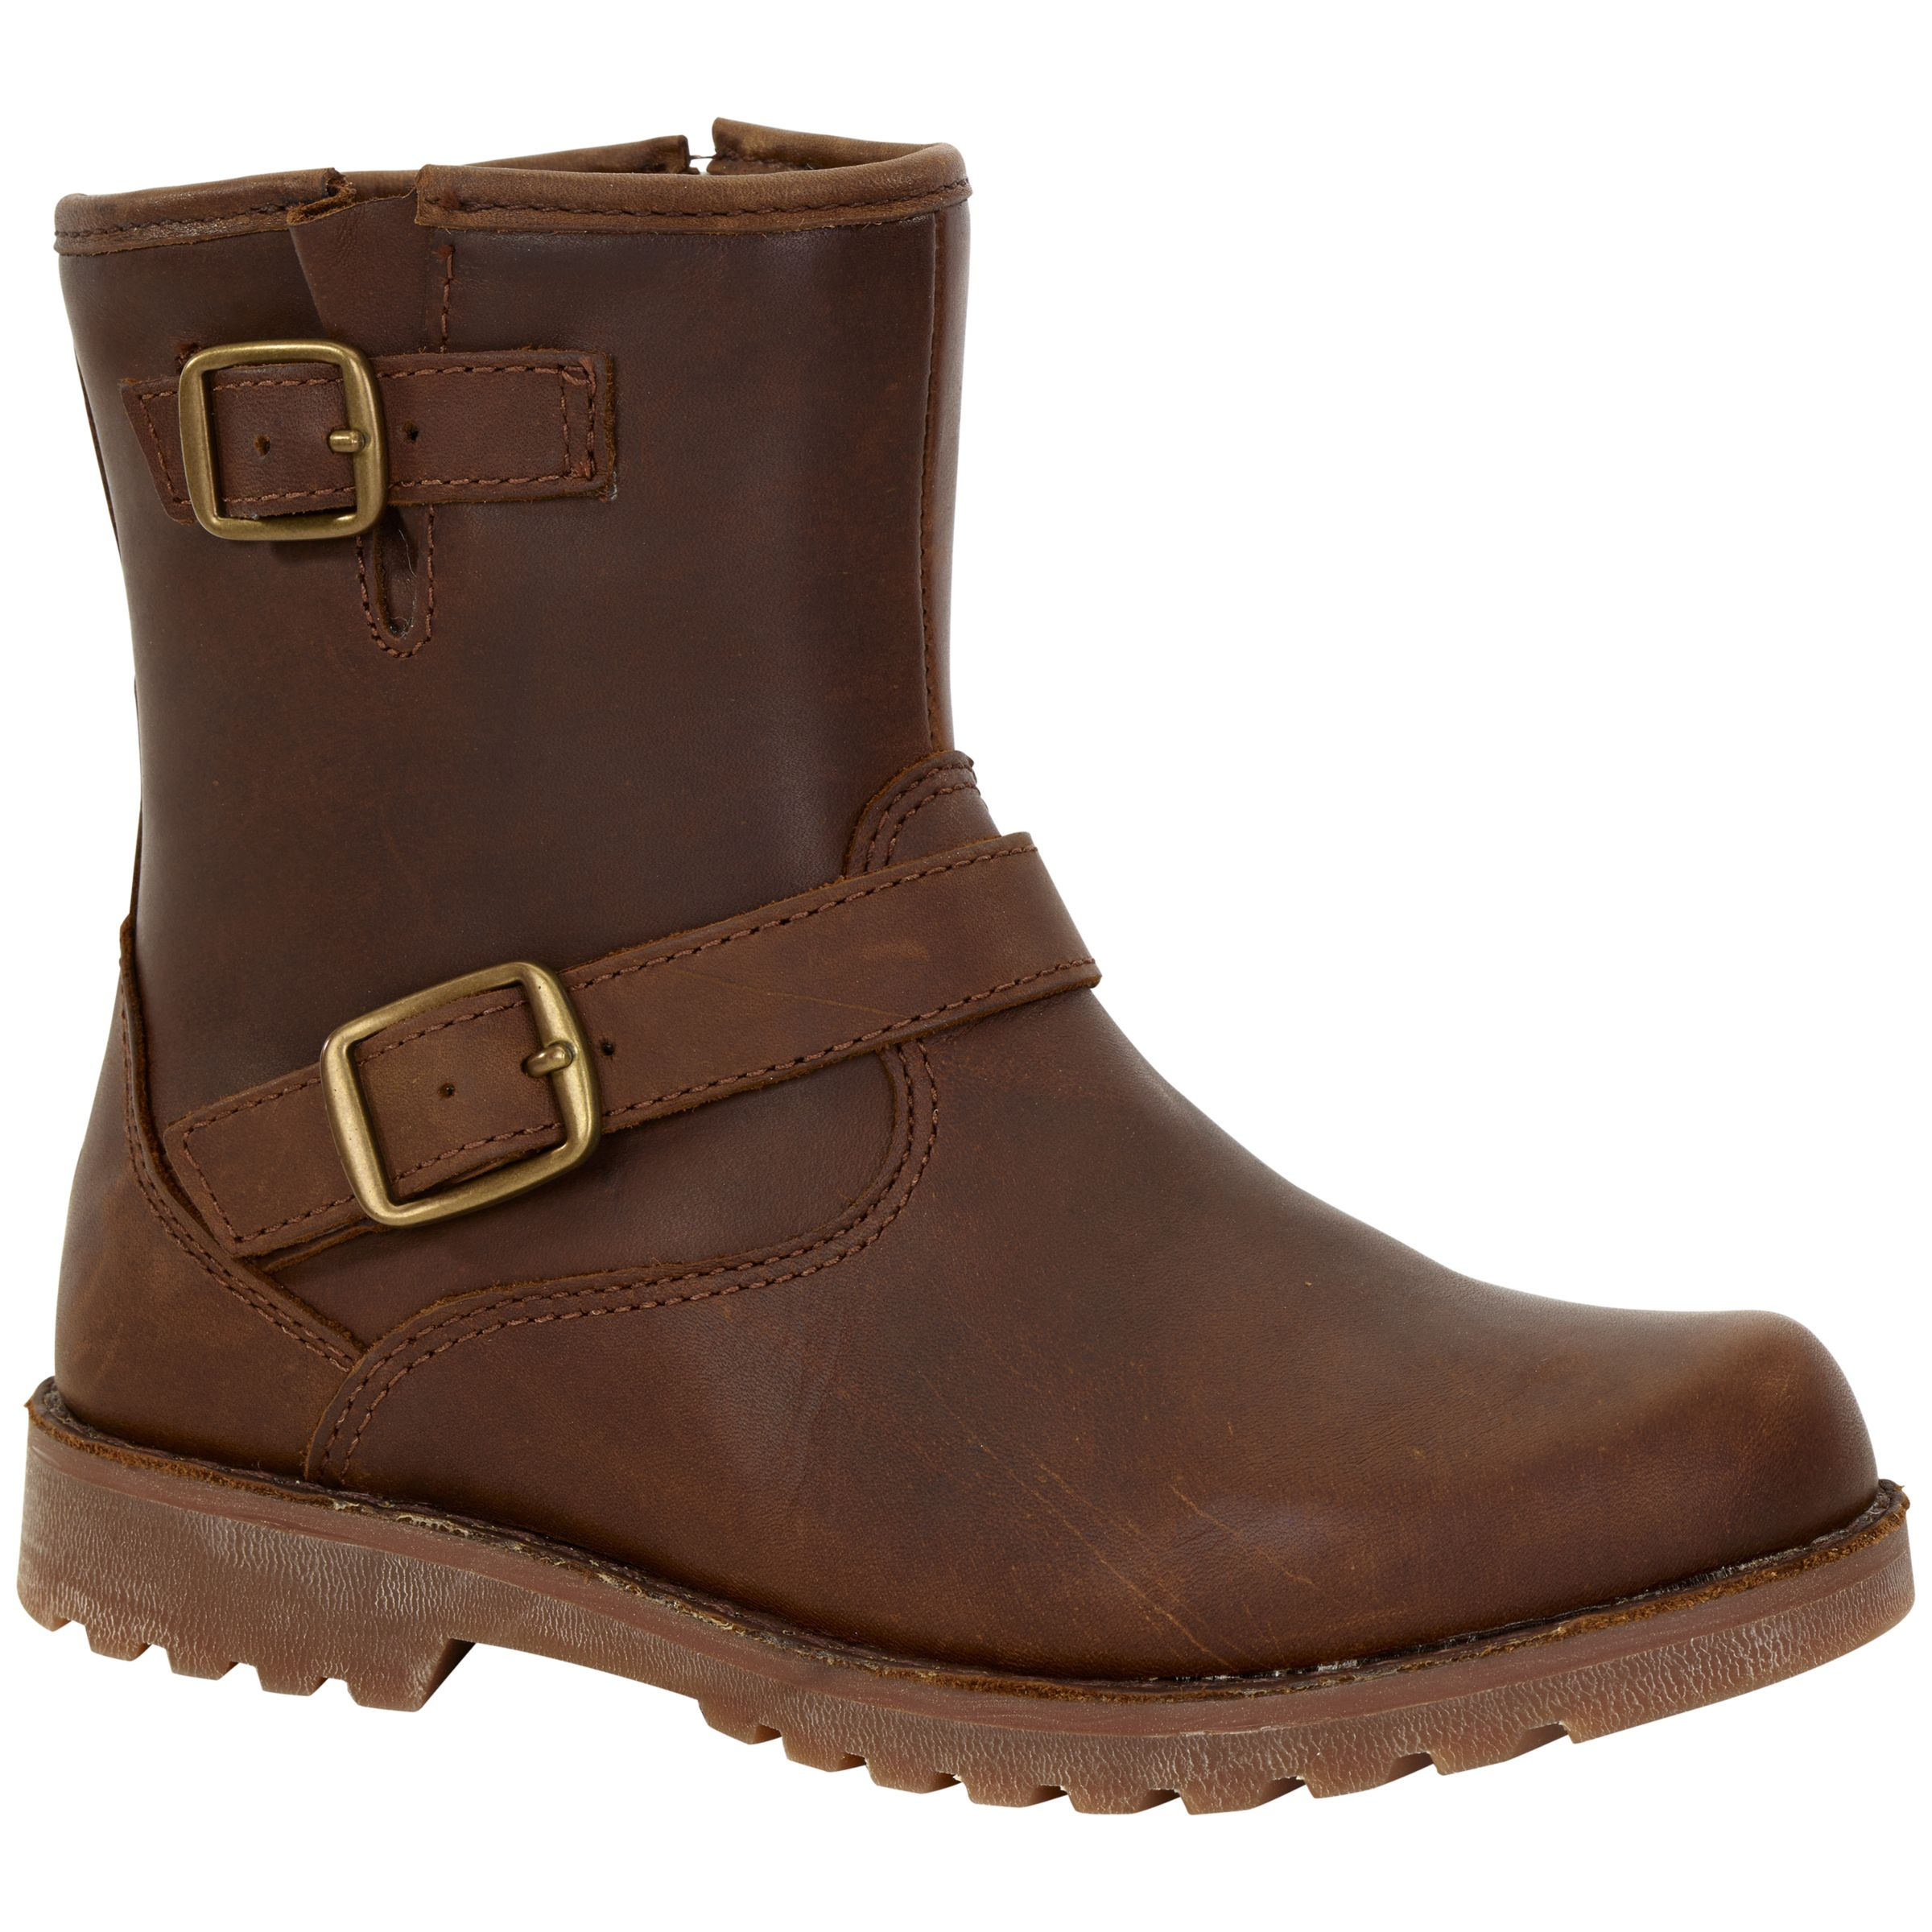 65381806613 UGG Harwell Stout Ankle Boots, Brown at John Lewis & Partners